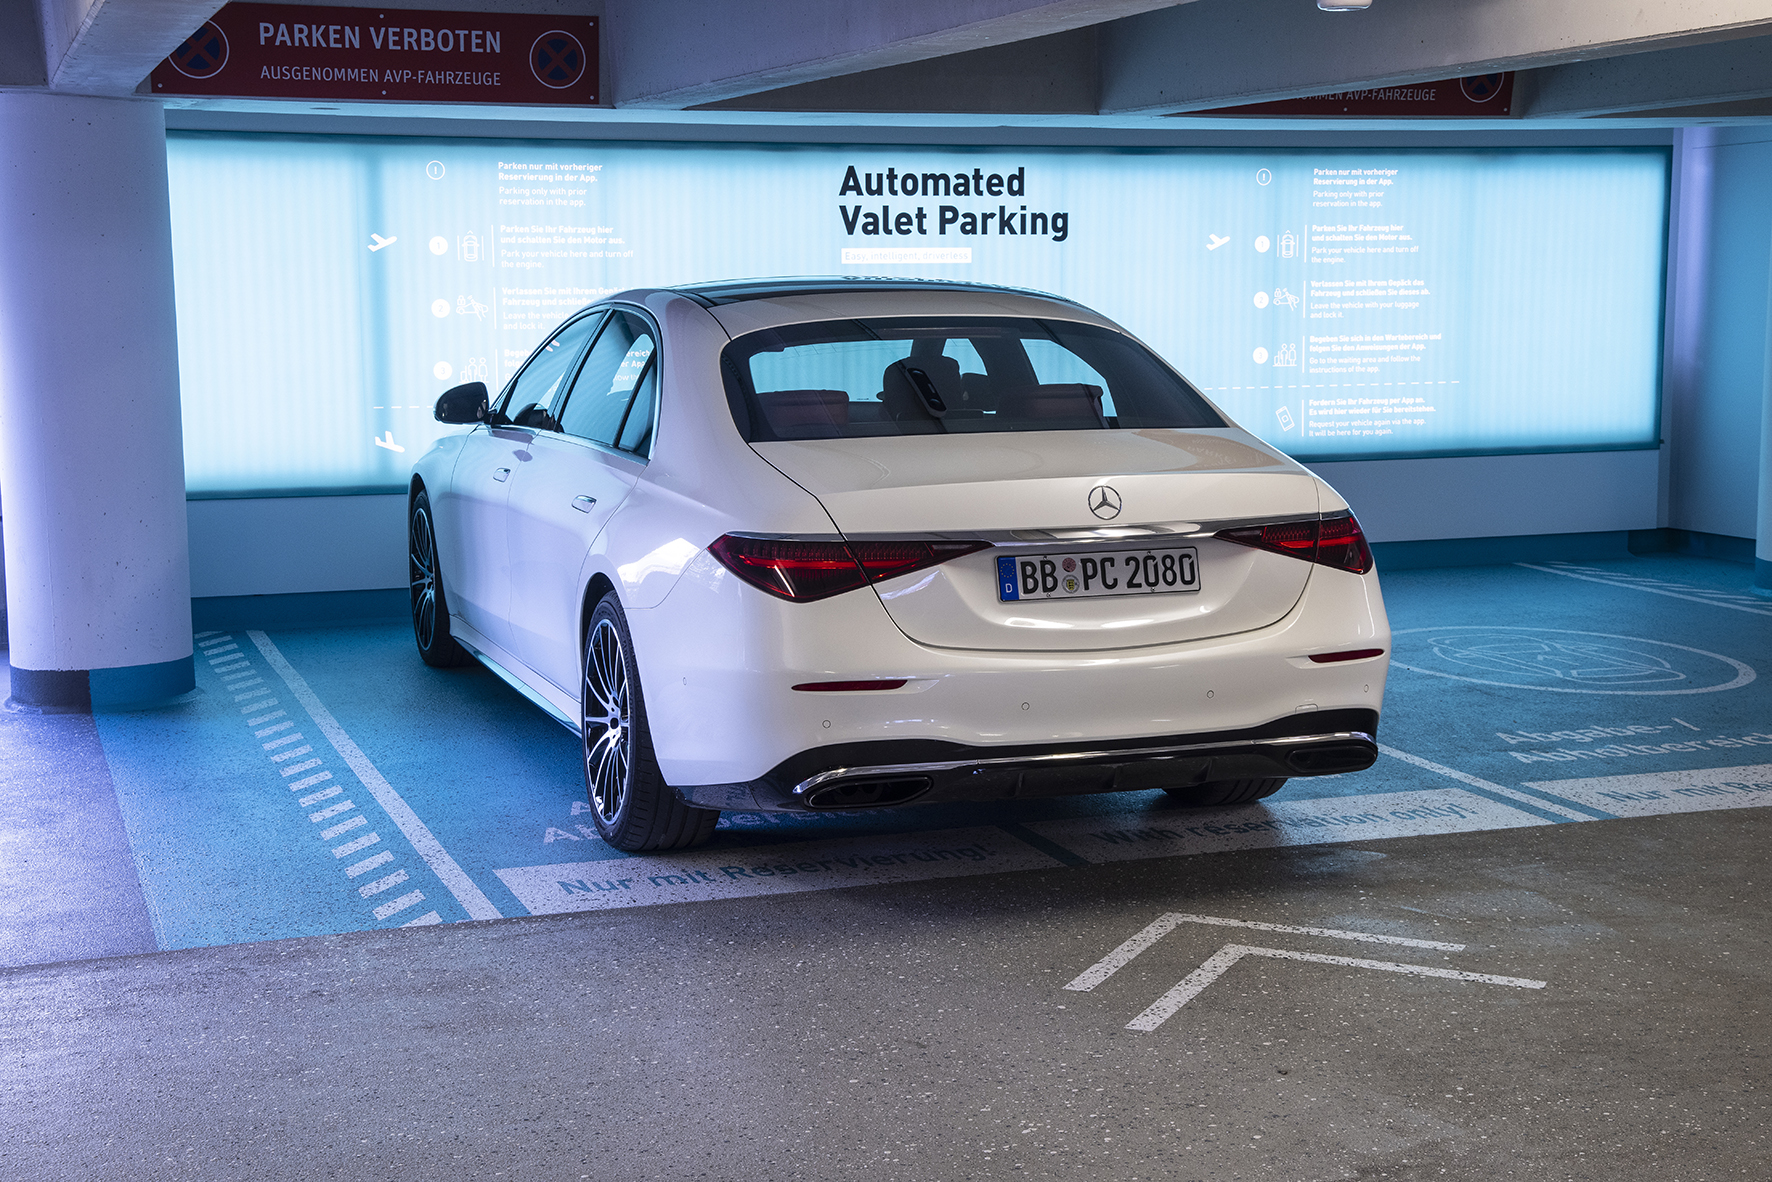 Connected vehicle and smart infrastructure enhance automated parking